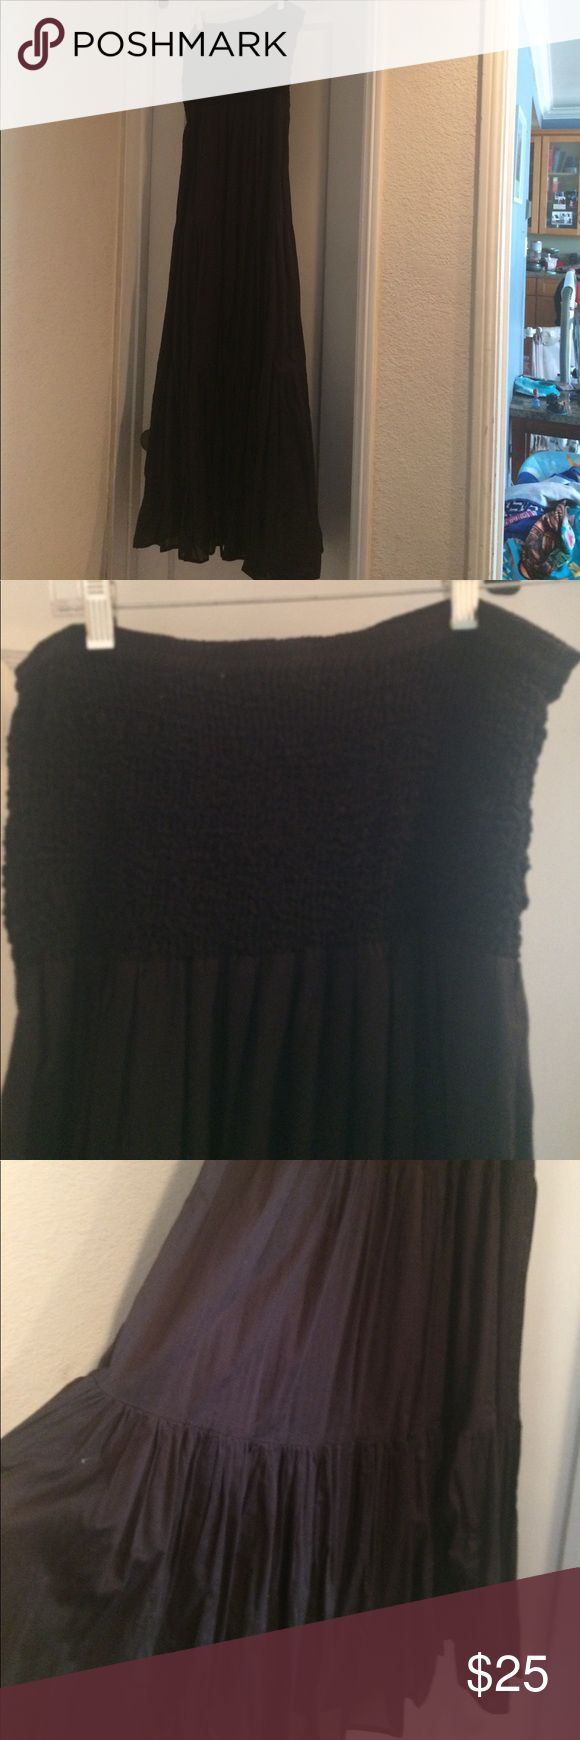 "Michael Michael Kors Strapless Maxi Dress Black flows maxi dress. Worn twice. Light weight linen like material. Perfect for summer. I am 5'1"" and the dress fell 3 inches past my ankles. Michael Kors Dresses Maxi"